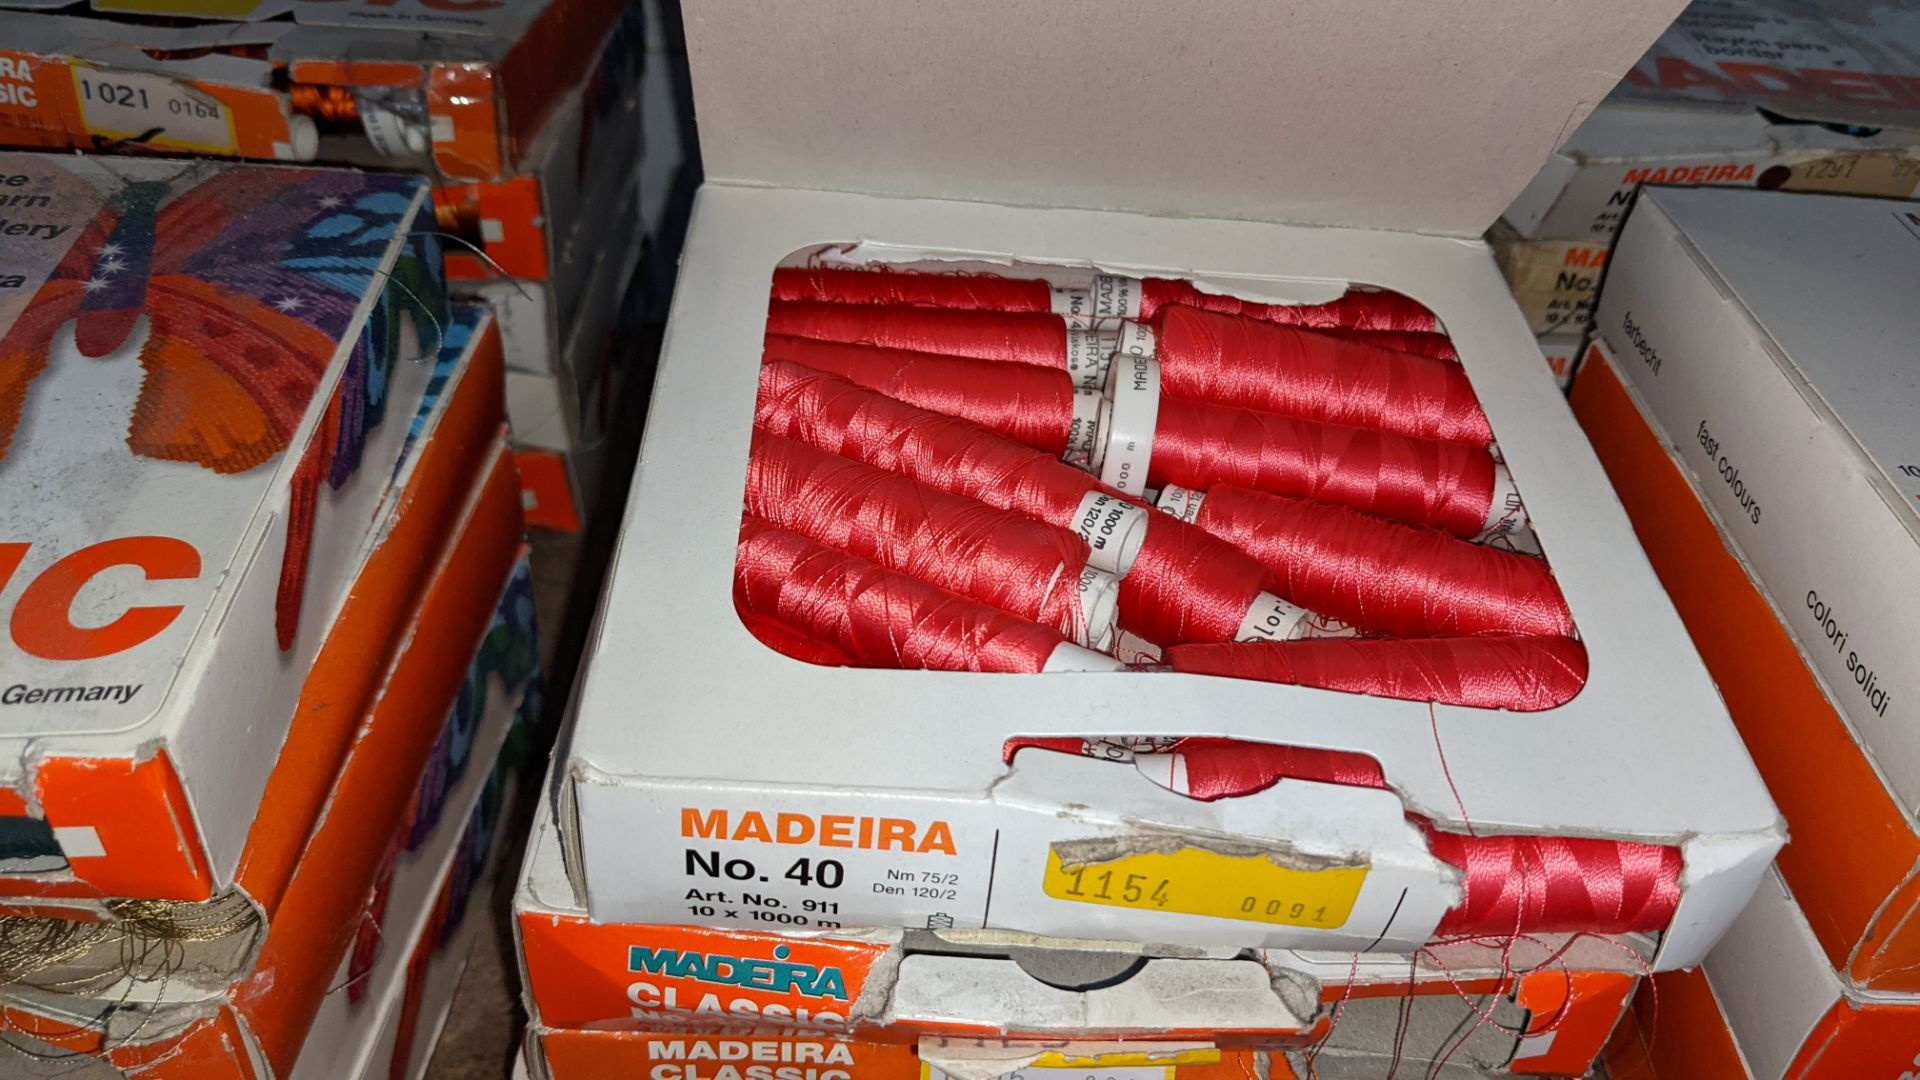 15 assorted boxes of Madeira Classic No. 40 embroidery rayon thread - Image 7 of 8